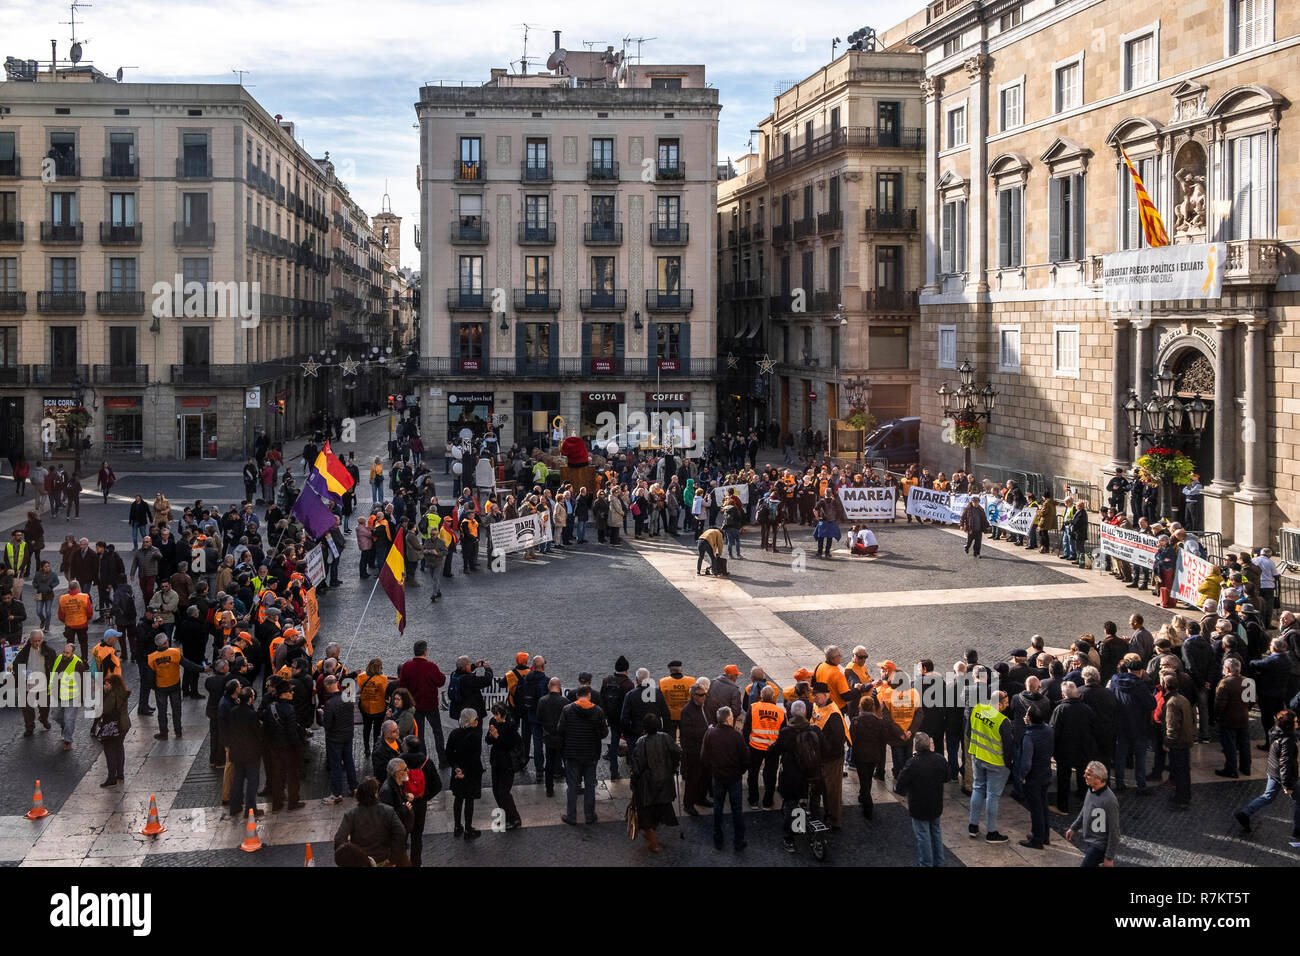 Barcelona, Spain. 10th December 2018. Protesters against the waiting lists of public health are seen gathered at  Plaza Sant Jaume during the protest. Called by Marea Blanca Catalunya within the state fight against the waiting lists and the commercialization of health, the protesters have toured the center of Barcelona to finish in front of the Generalitat of Catalonia. Credit: SOPA Images Limited/Alamy Live News - Stock Image